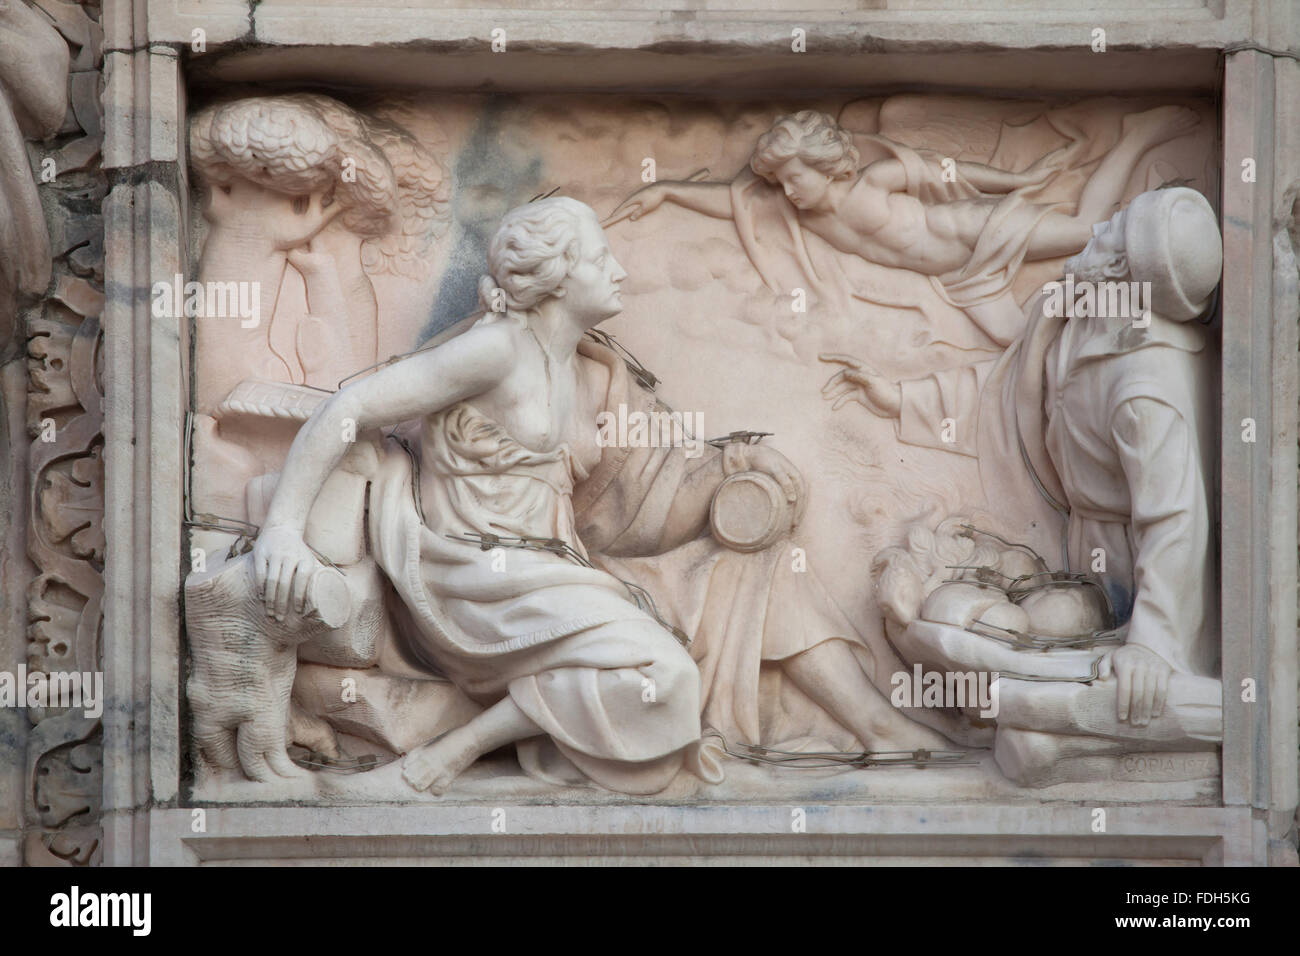 Biblical scene depicted in the marble relief on the main facade of the Milan Cathedral (Duomo di Milano) in Milan, - Stock Image